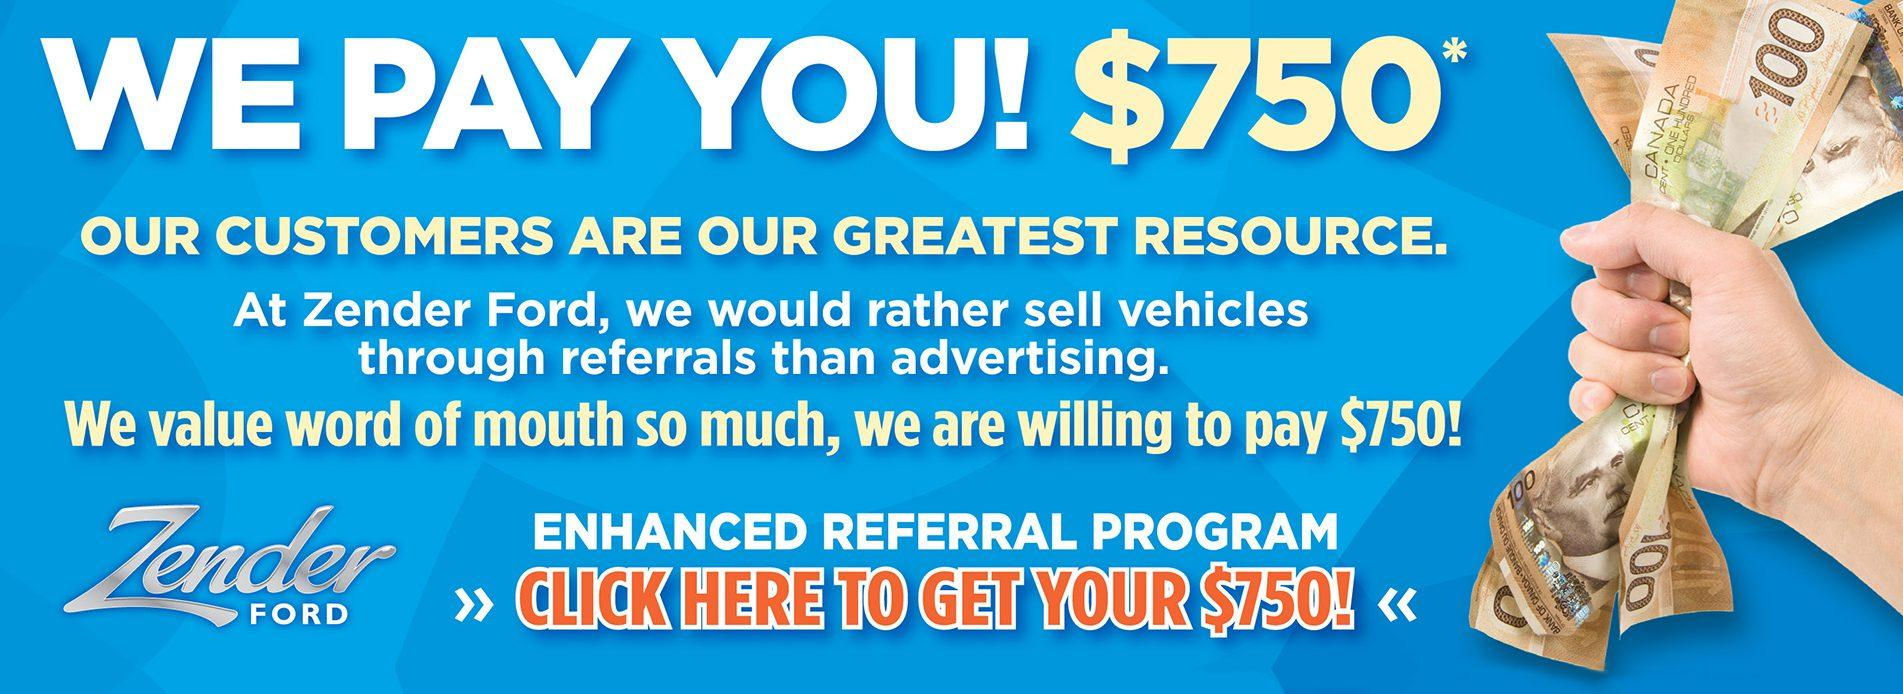 Refer someone, get $750 at Zender Ford!